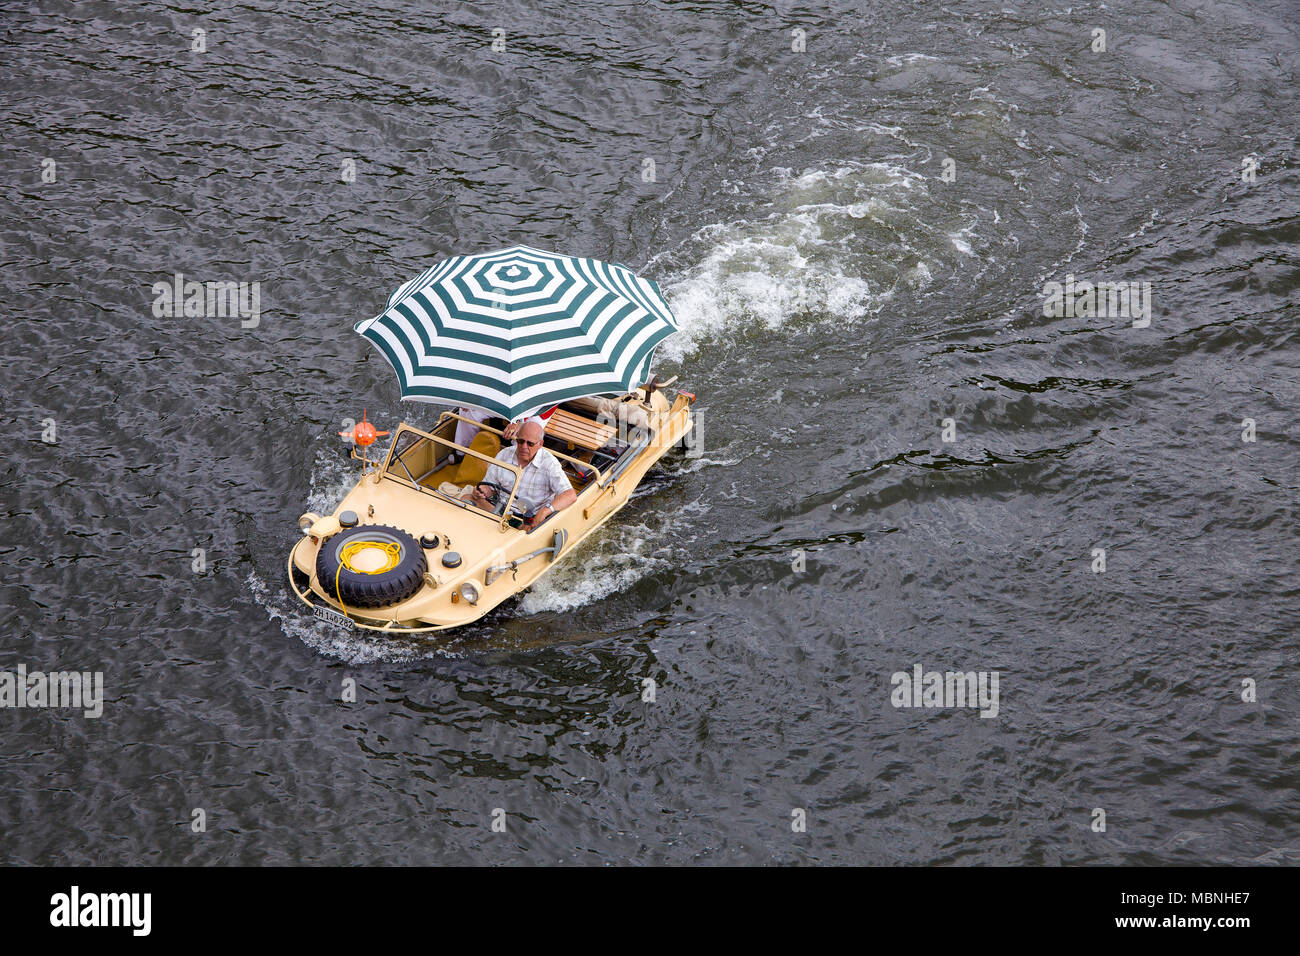 VW Typ 166, a german amphibious vehicle built at the 2nd world war driving on Moselle river, Piesport, Rhineland-Palatinate, Germany - Stock Image